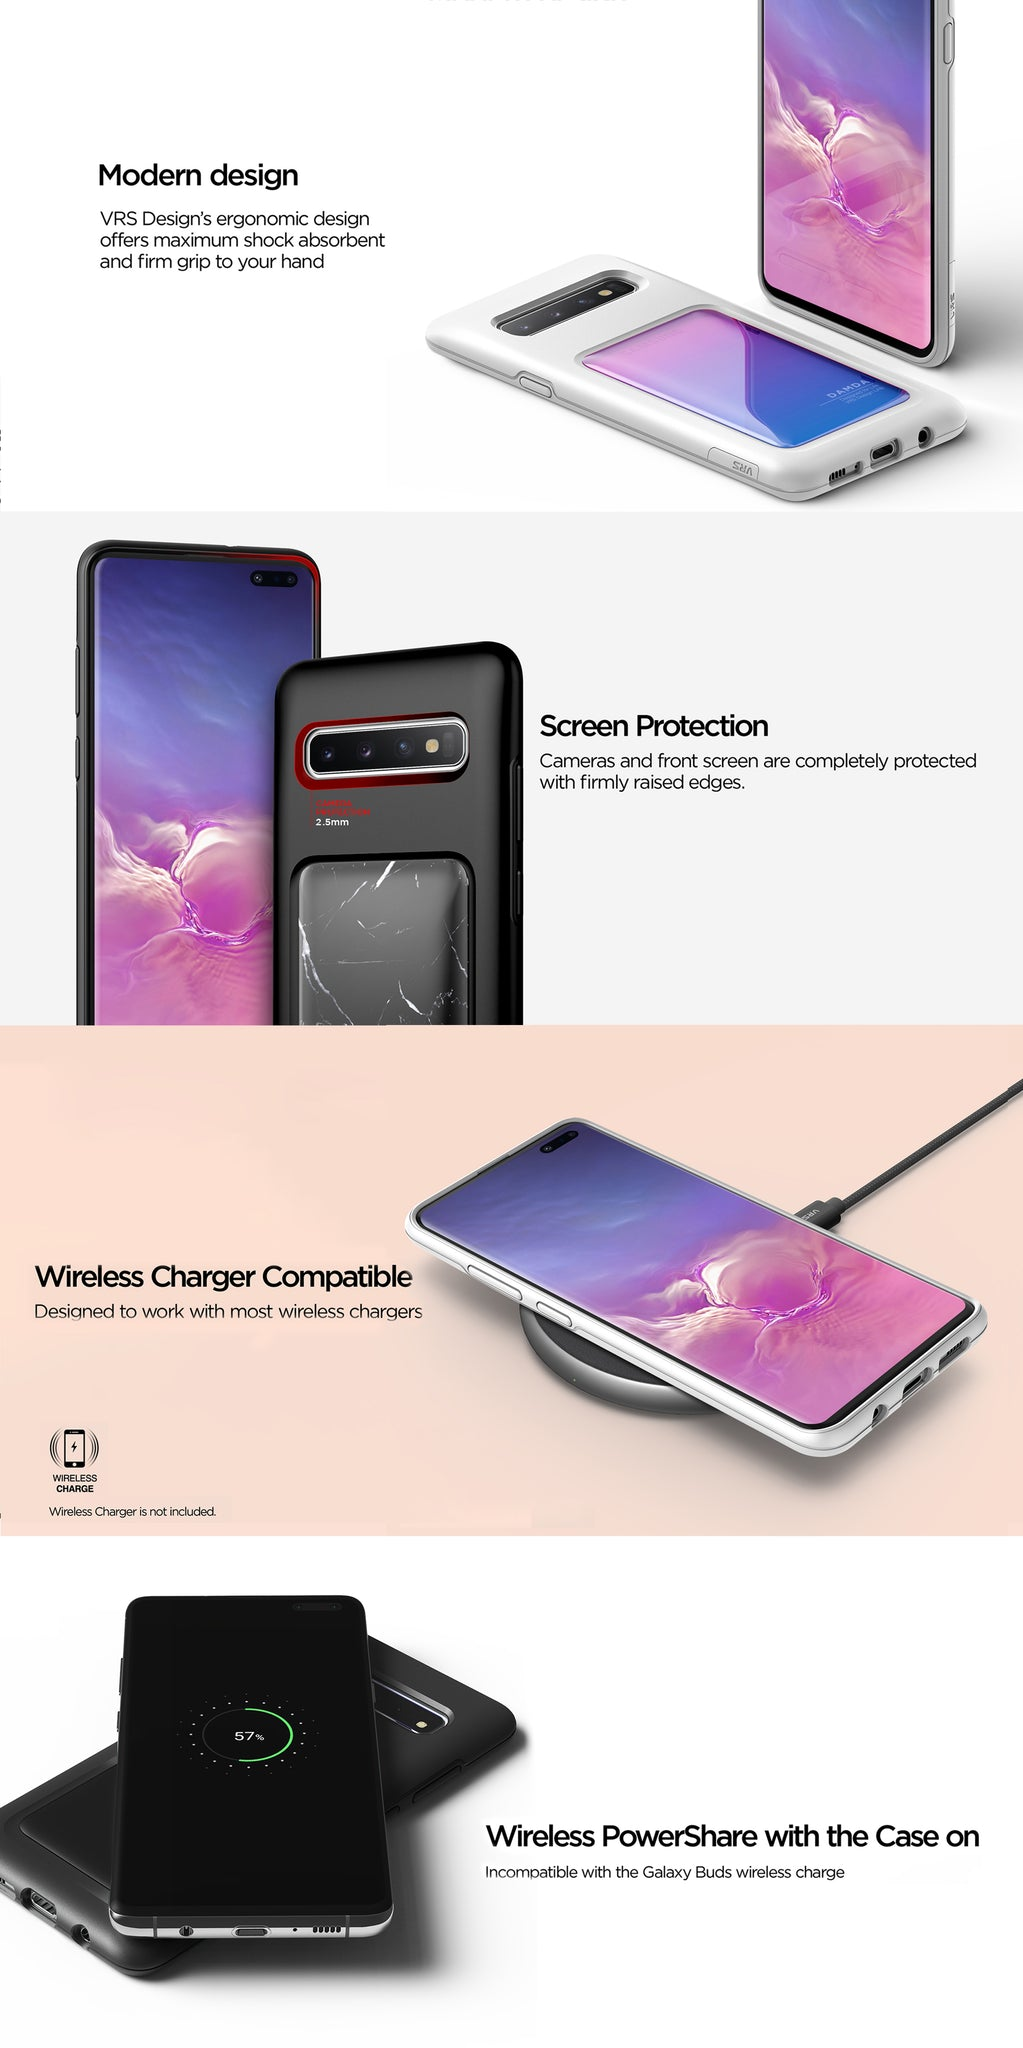 VRS Design | The Best Protection Case for Galaxy S10 - Damda High Pro Shield